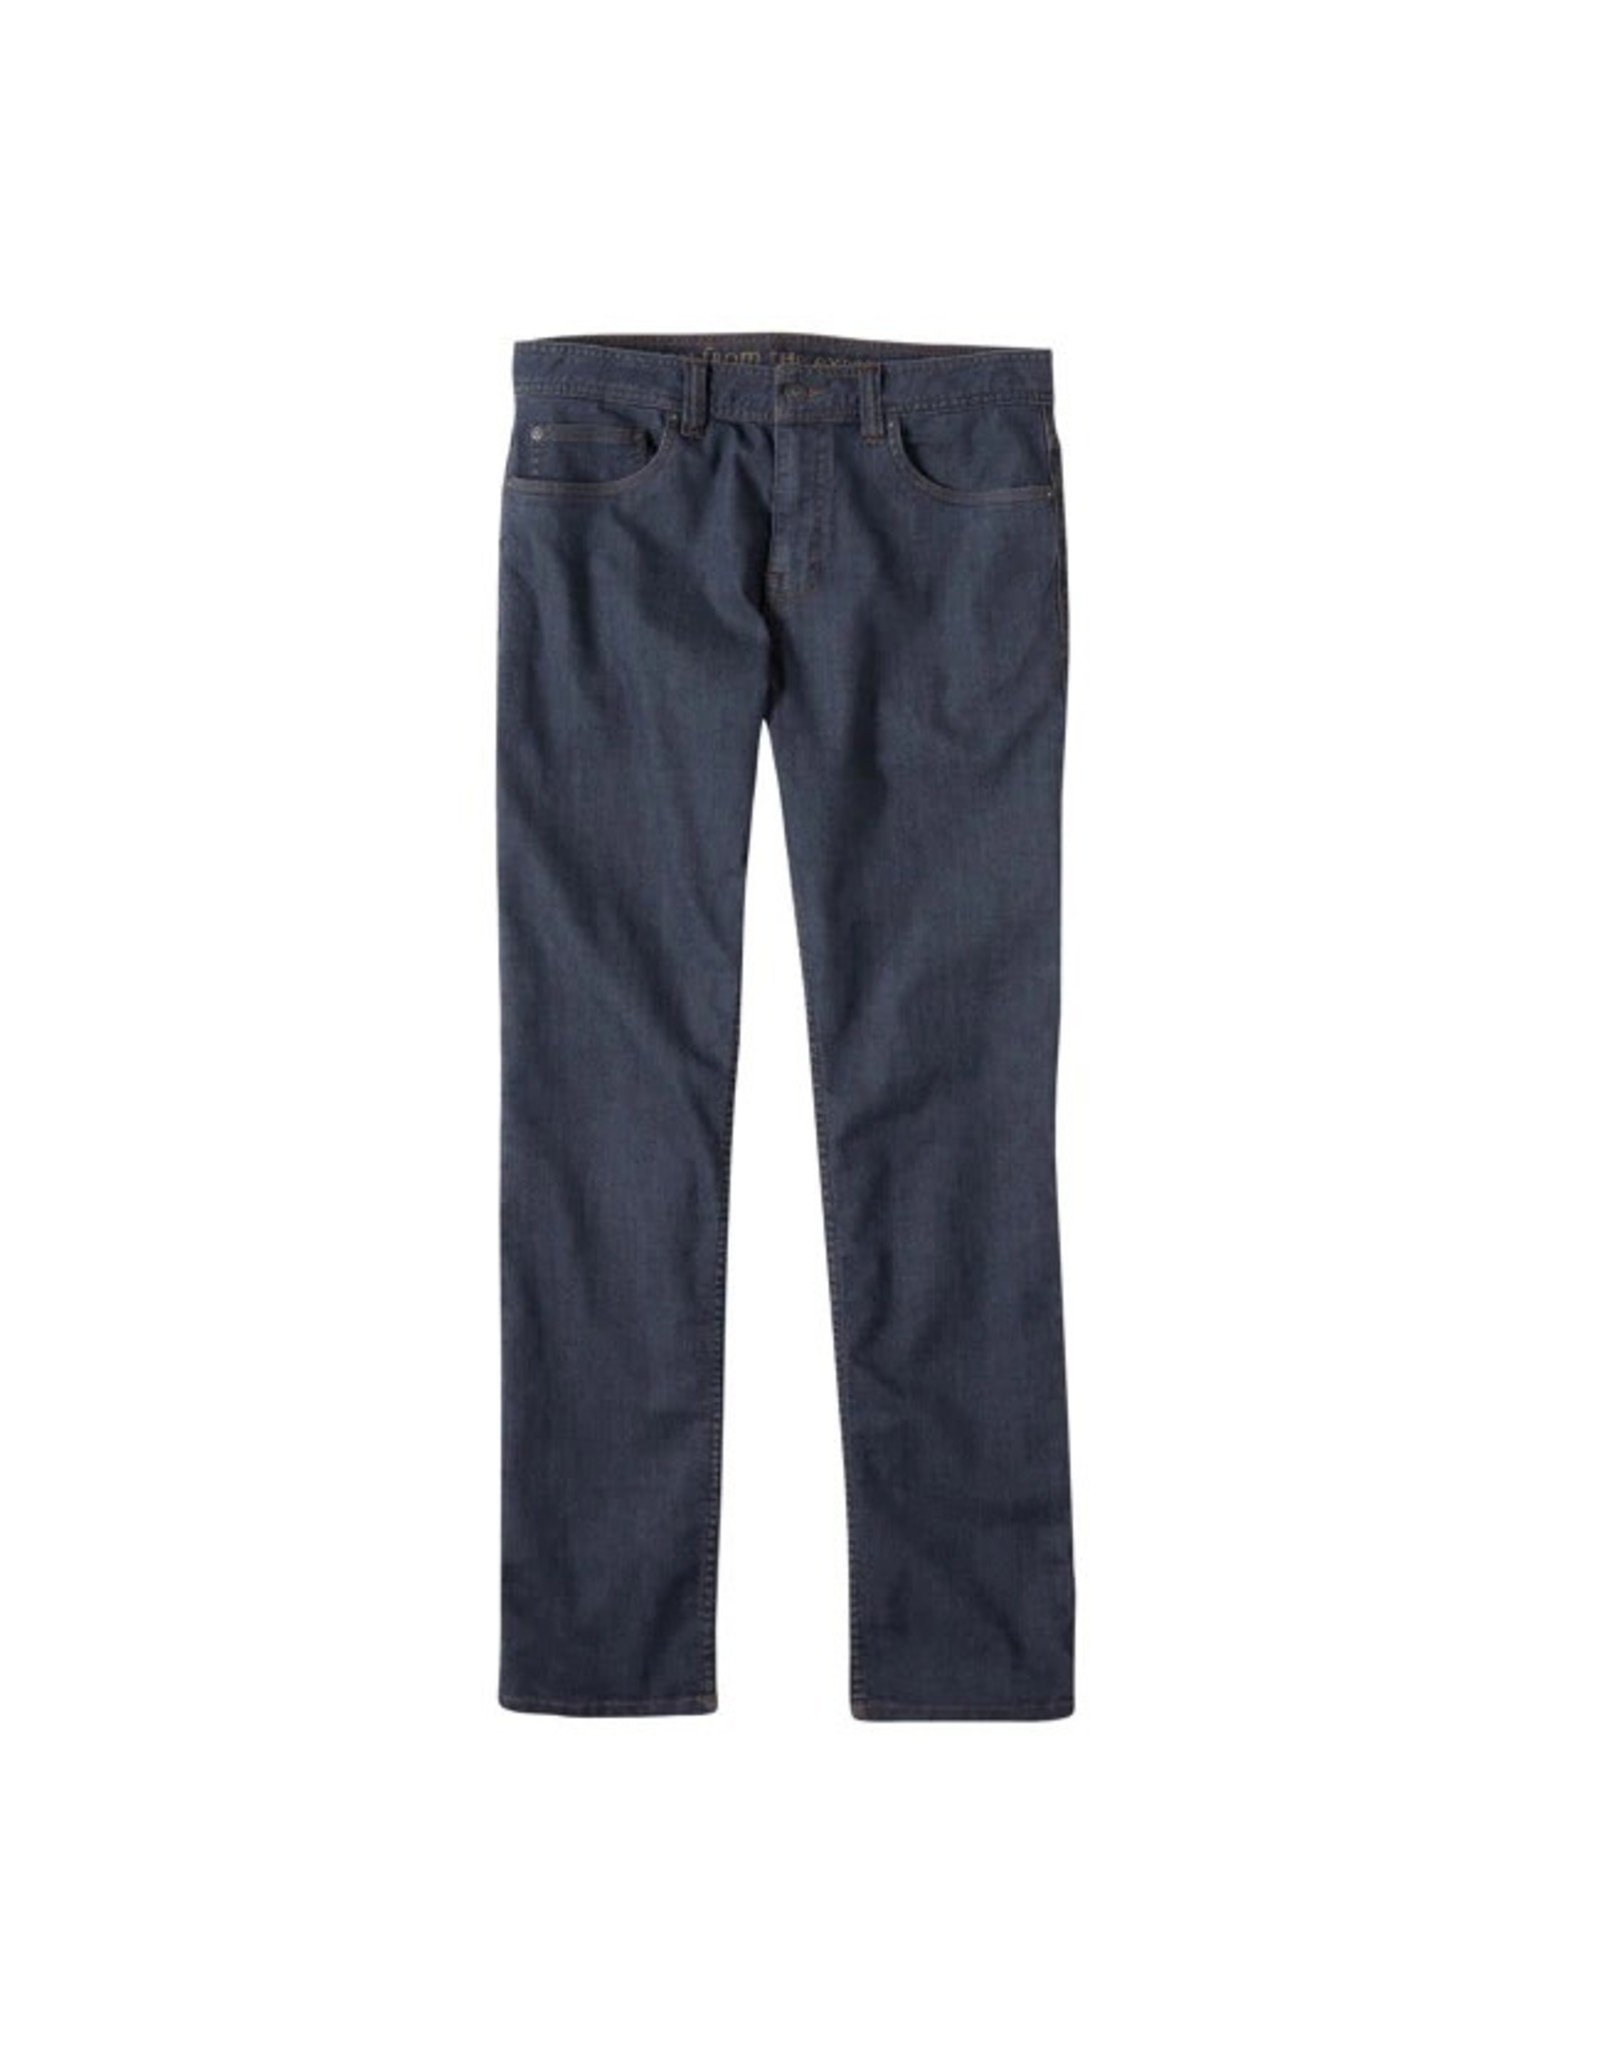 Prana Prana Bridger Jean: Denim- 32/33